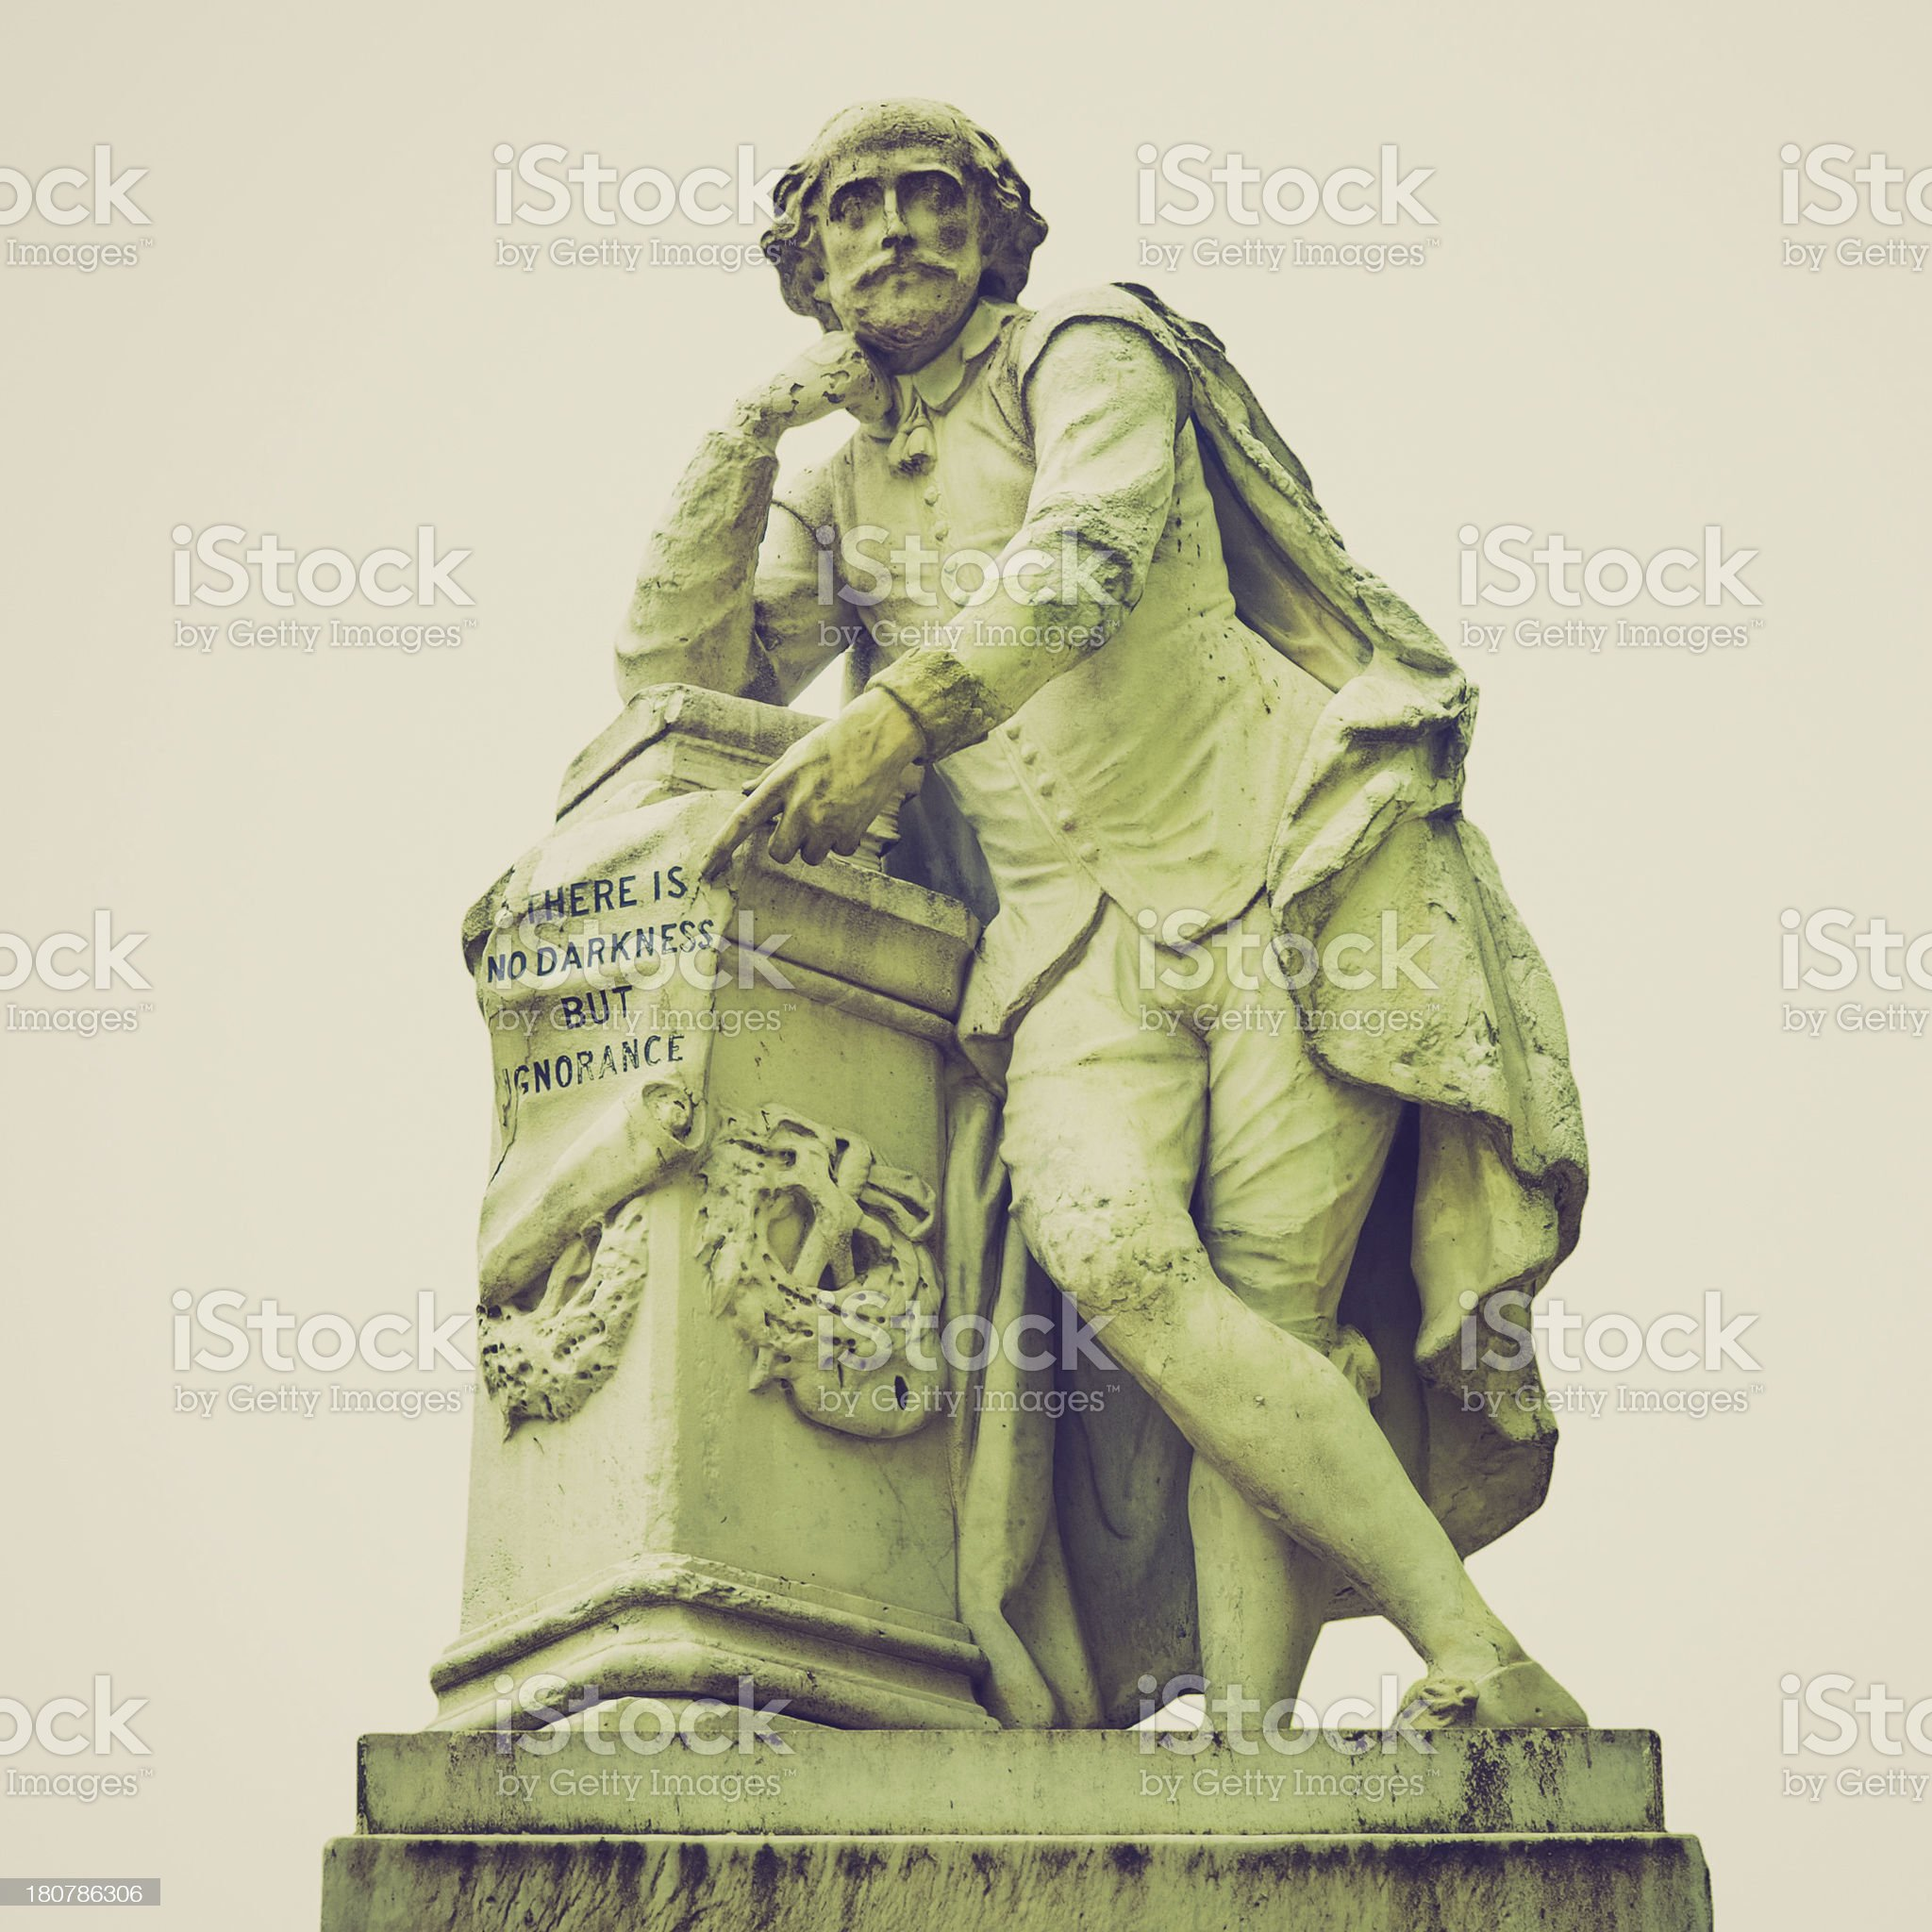 Retro look Shakespeare statue royalty-free stock photo